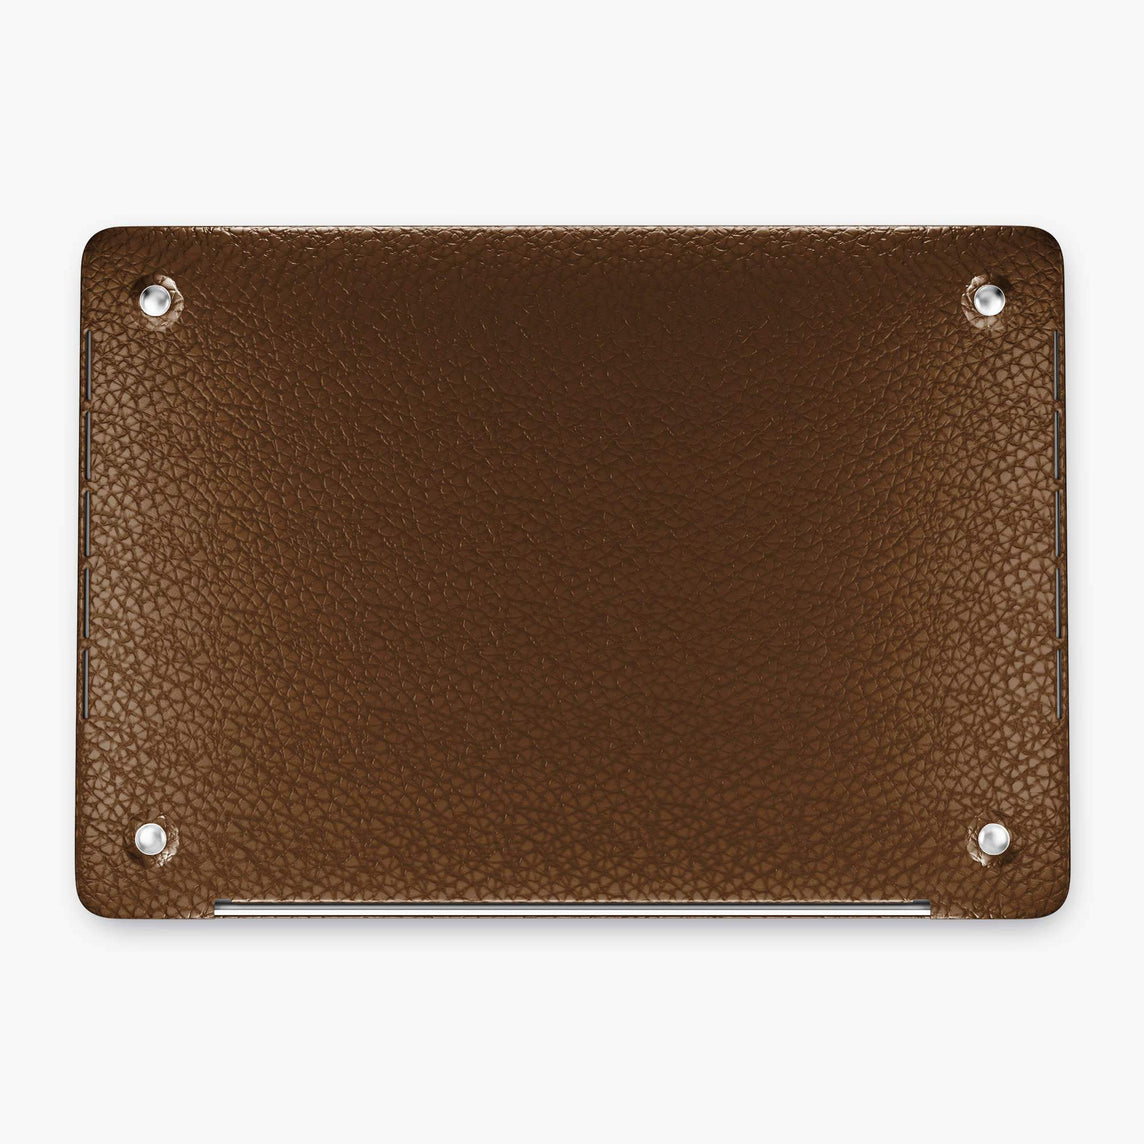 Calfskin Macbook Case Apple Mac Book 13'' Pro | Brown - Stainless Steel